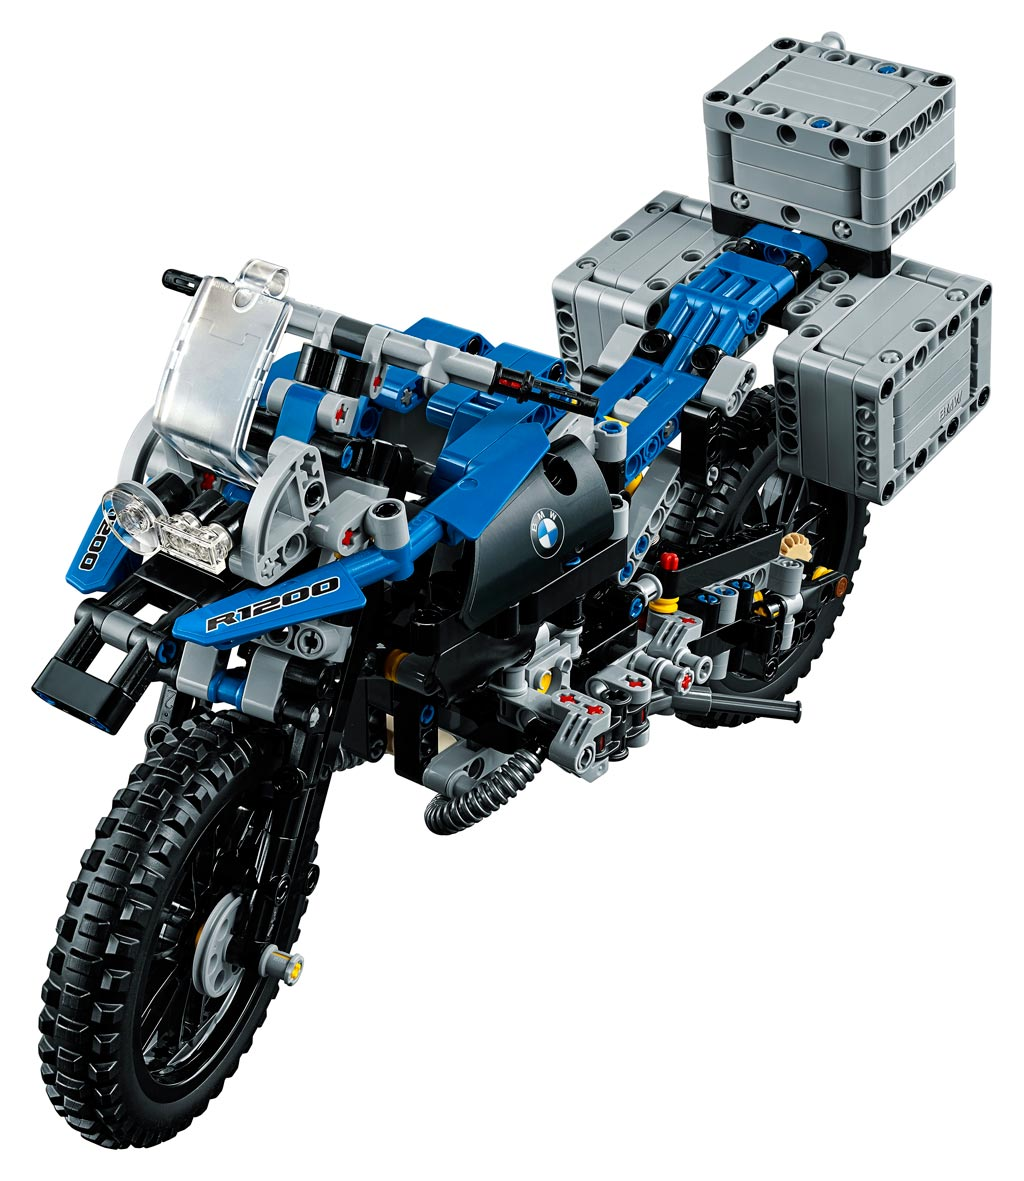 LEGO Technic 2017 | © LEGO Group